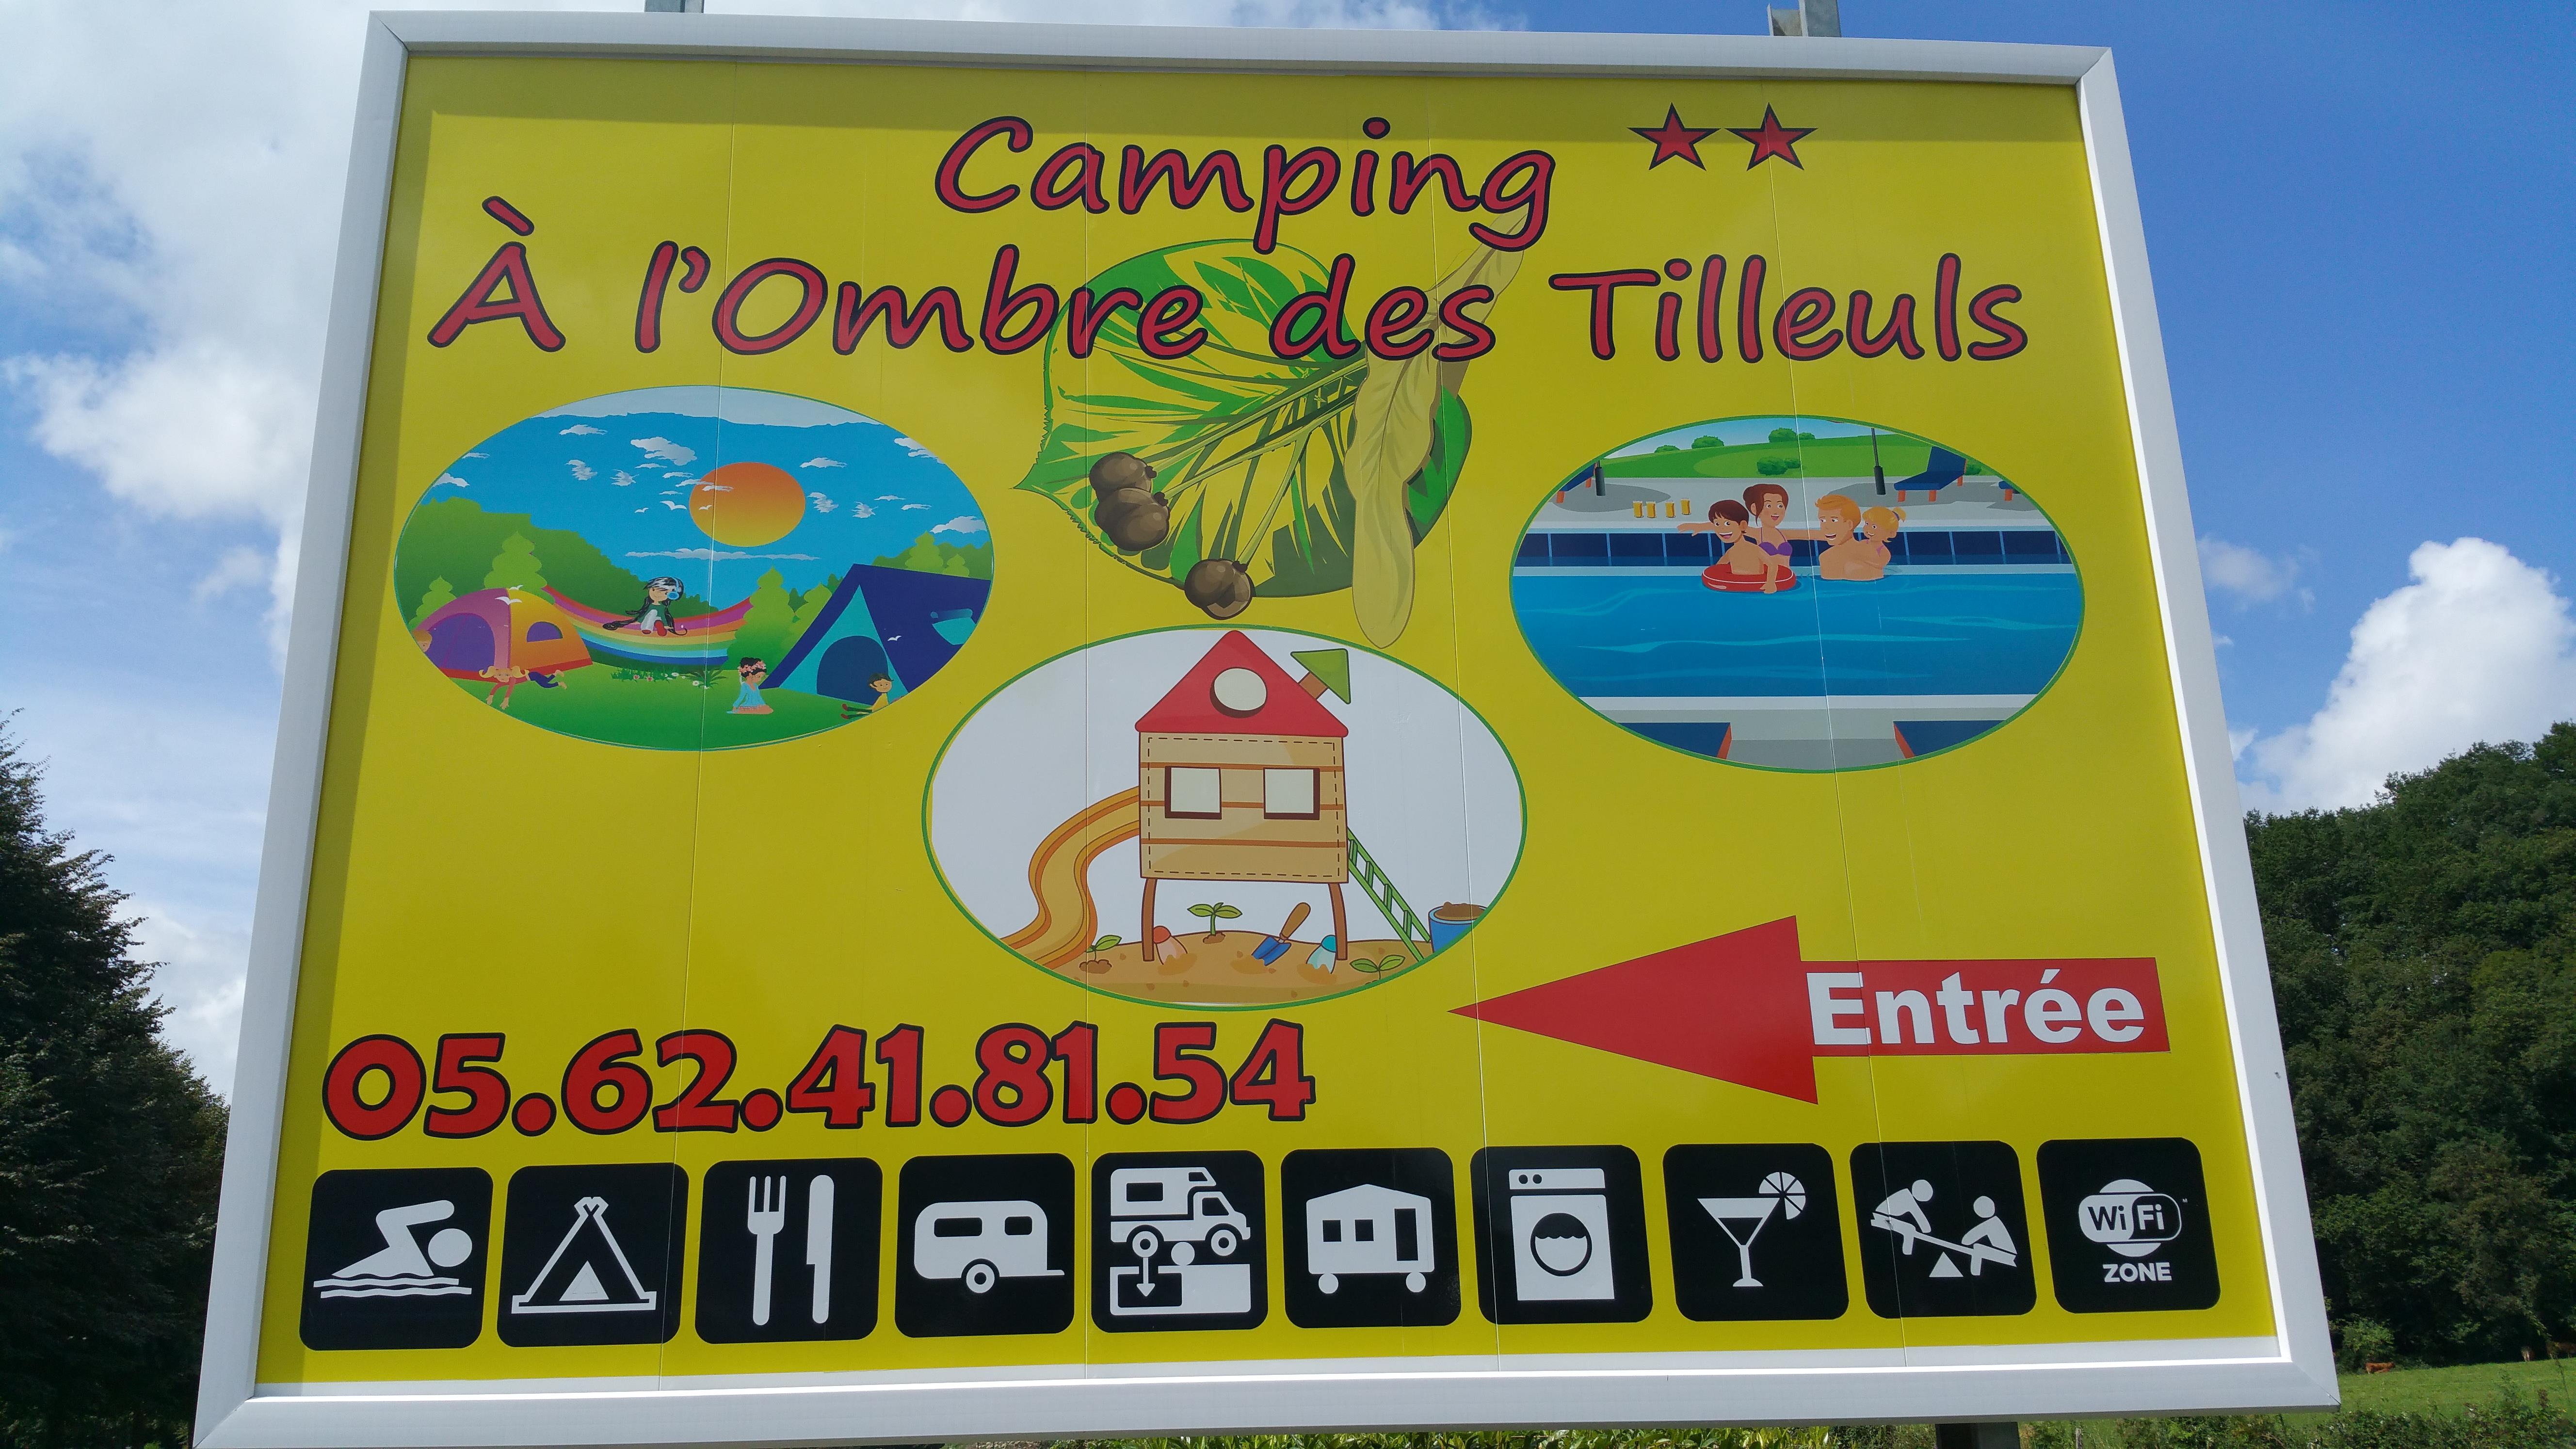 Services Camping A l'Ombre des Tilleuls - PEYROUSE